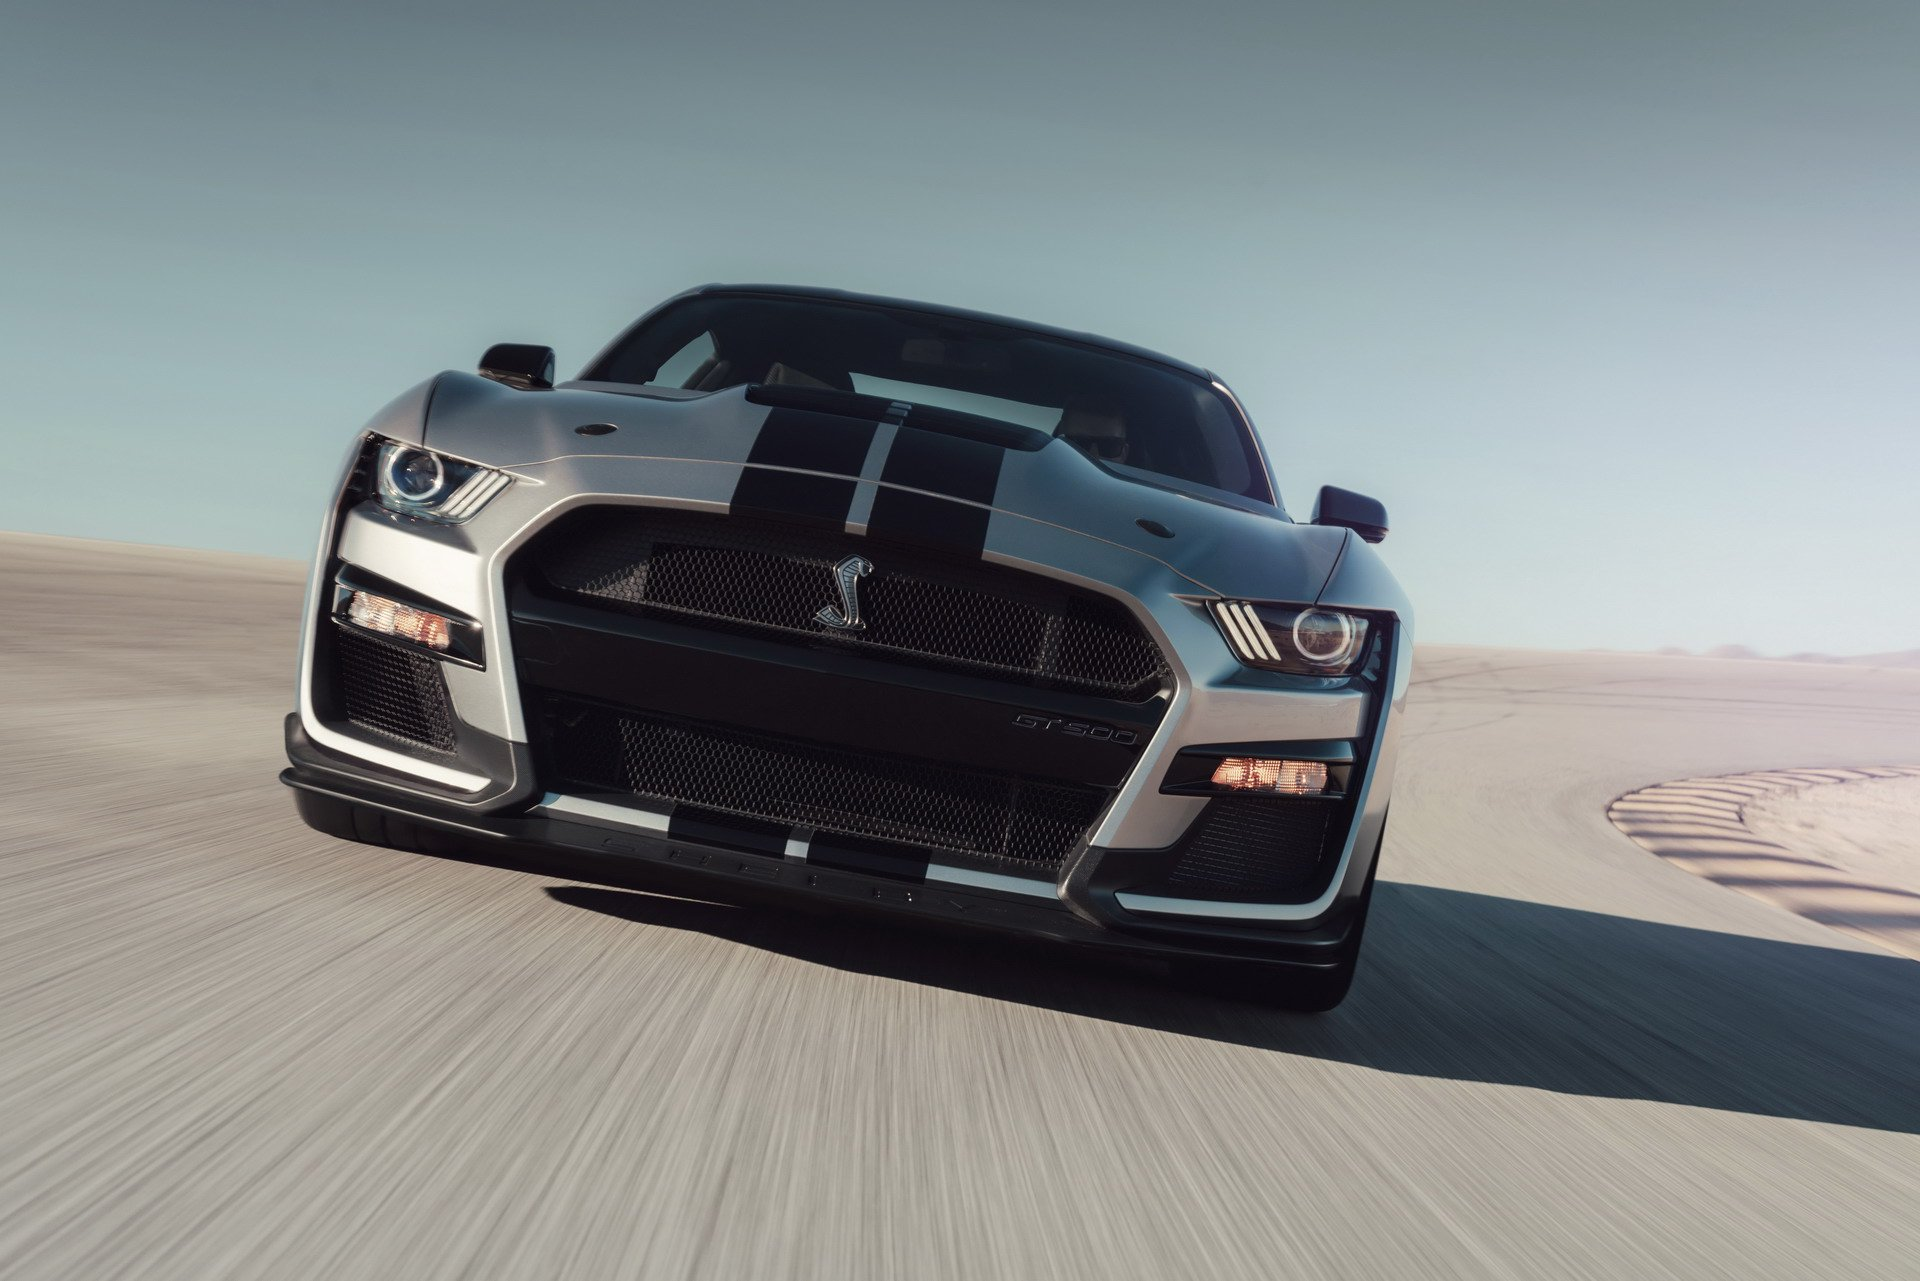 2020-ford-mustang-shelby-gt500-75.jpg